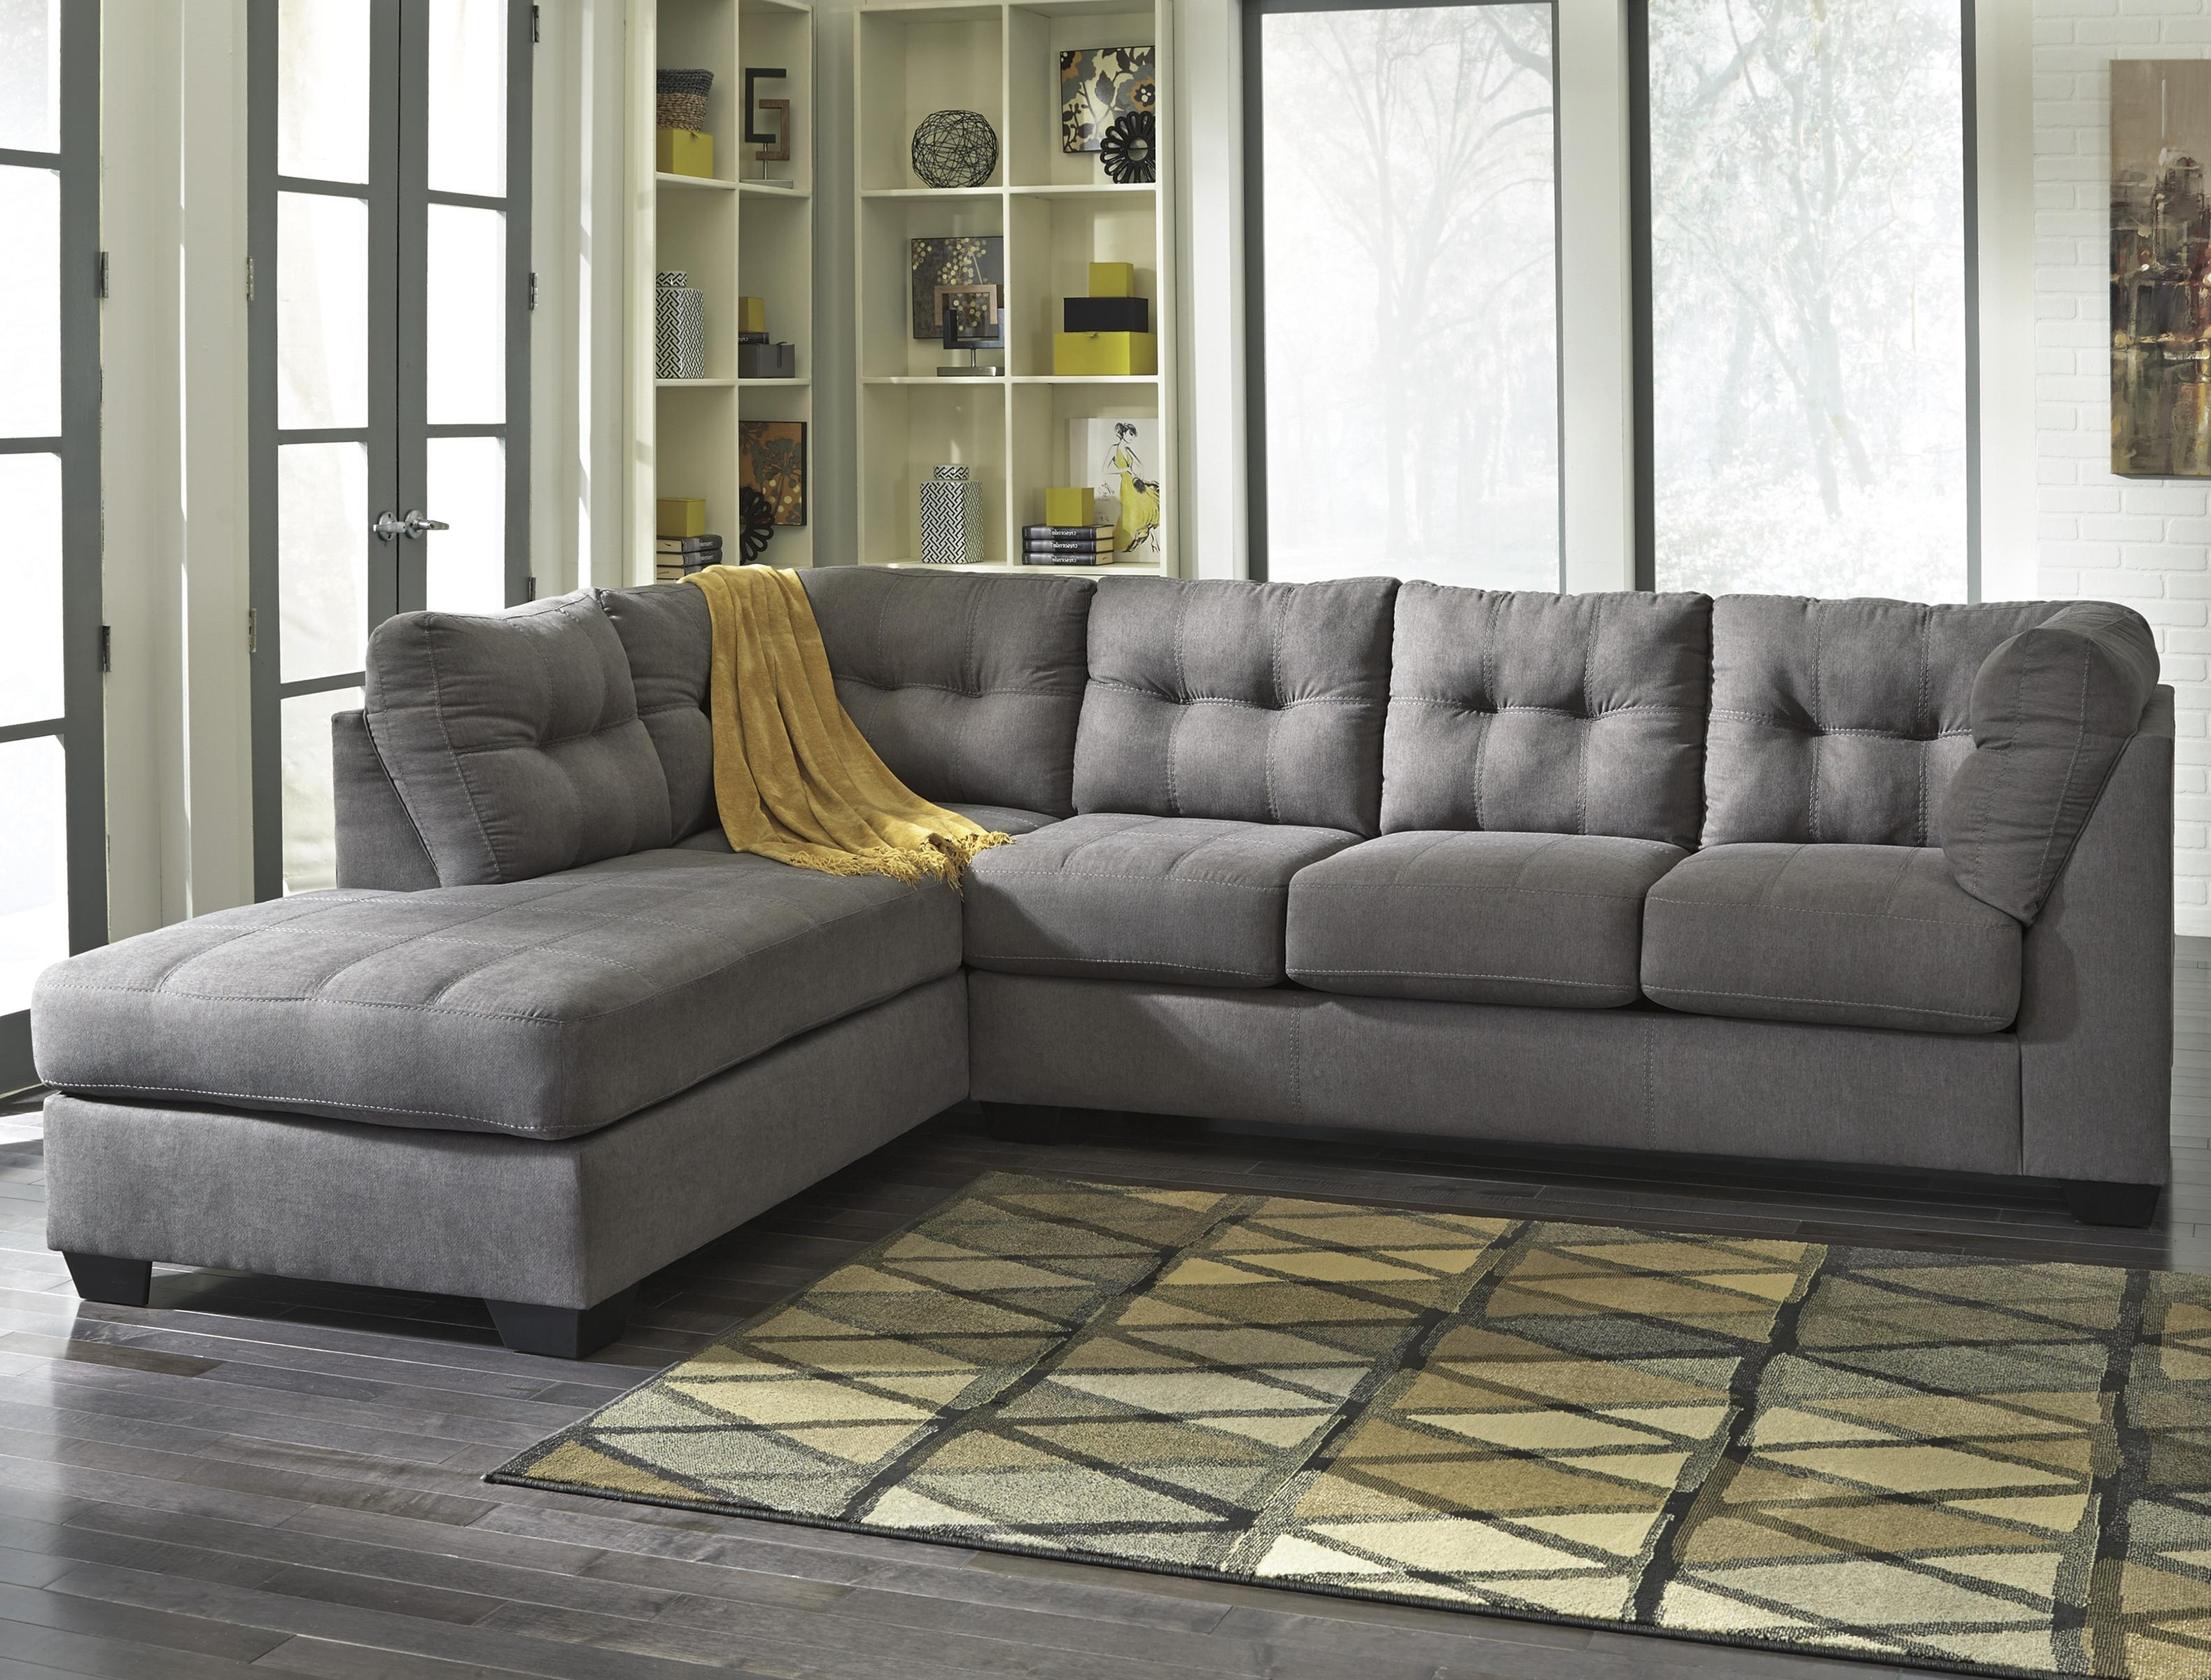 Mississauga Sectional Sofas Pertaining To Popular Inspirational Sectional Sofas Portland Oregon 66 On Sectional (View 4 of 15)